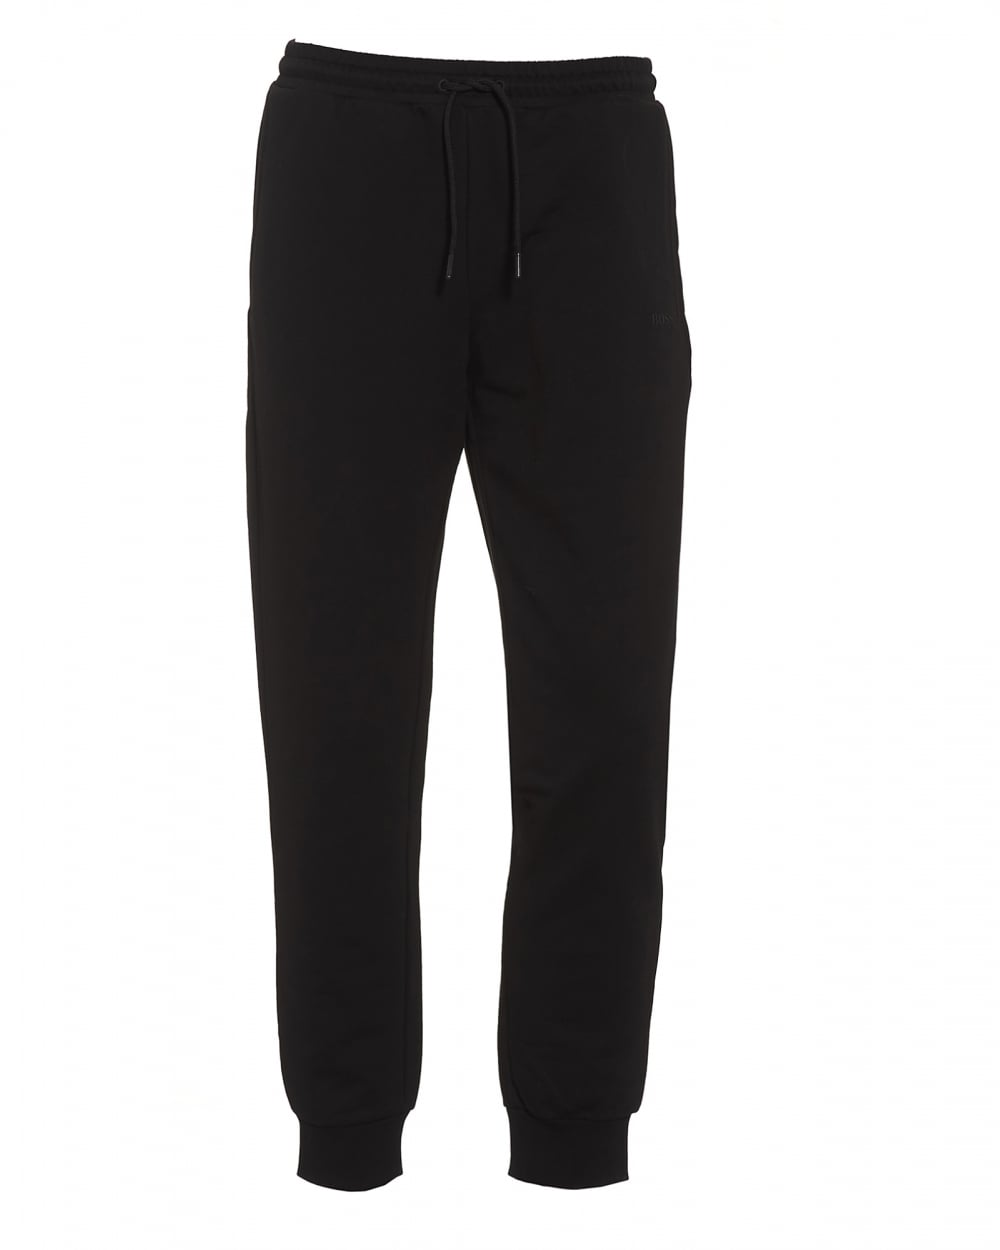 52c209b1 Hugo Boss Green Mens Hivon Tracksuit Bottoms, Black Sweat Pants